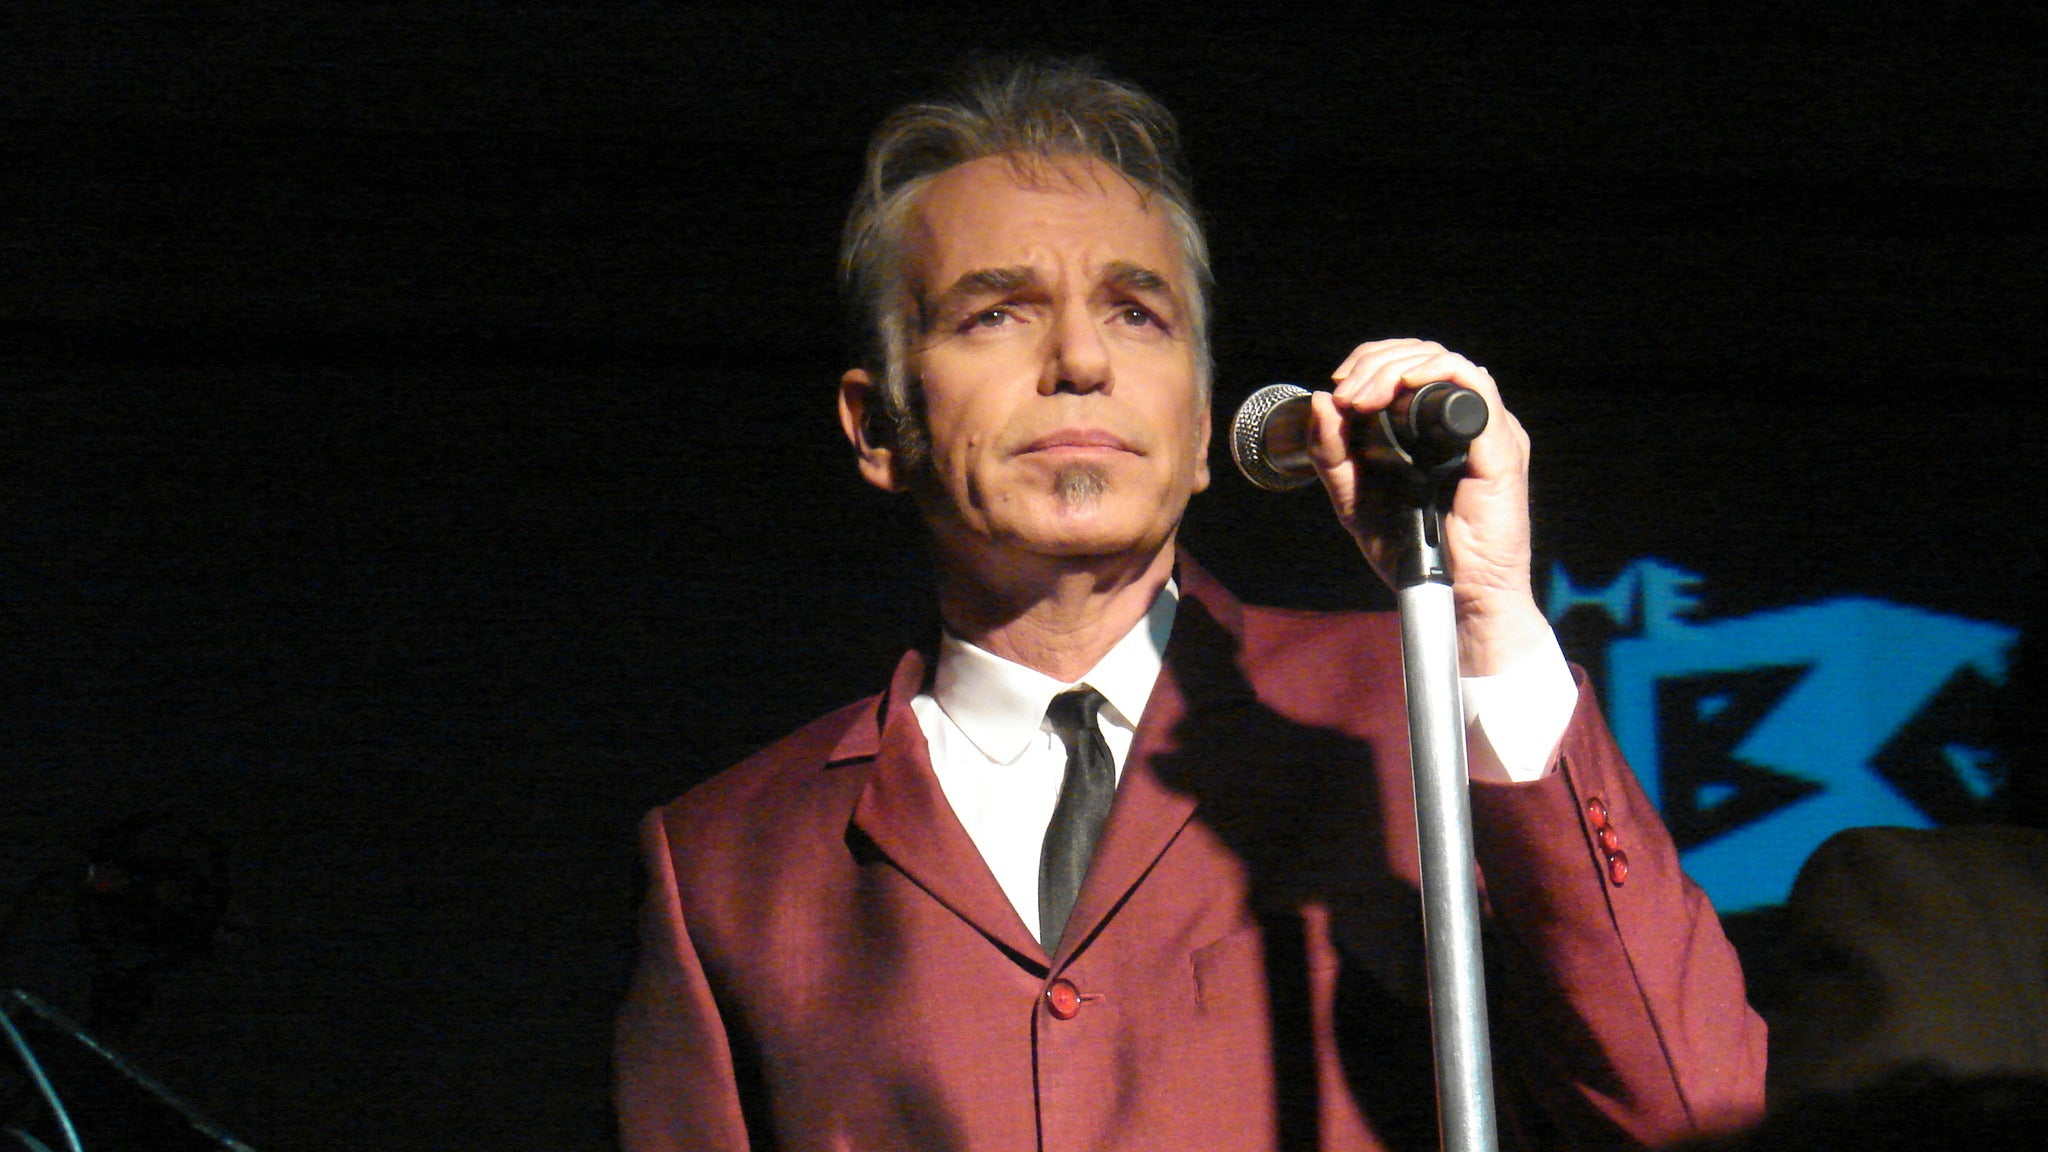 Billy Bob Thornton at Bismarck Event Center